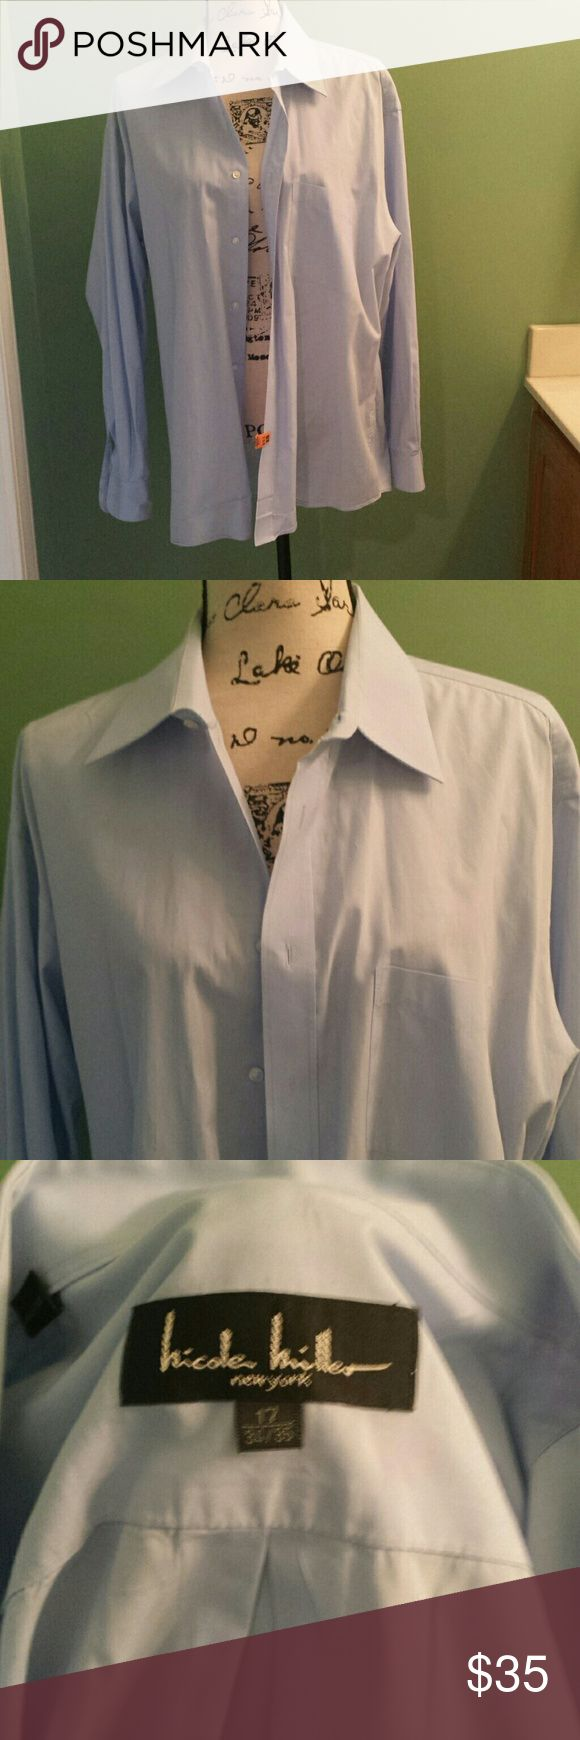 Men's Dress shirt Light blue long sleeves , one pocket on right side. It's dry clean and starched already. Excellent condition hi cole miller Tops Button Down Shirts